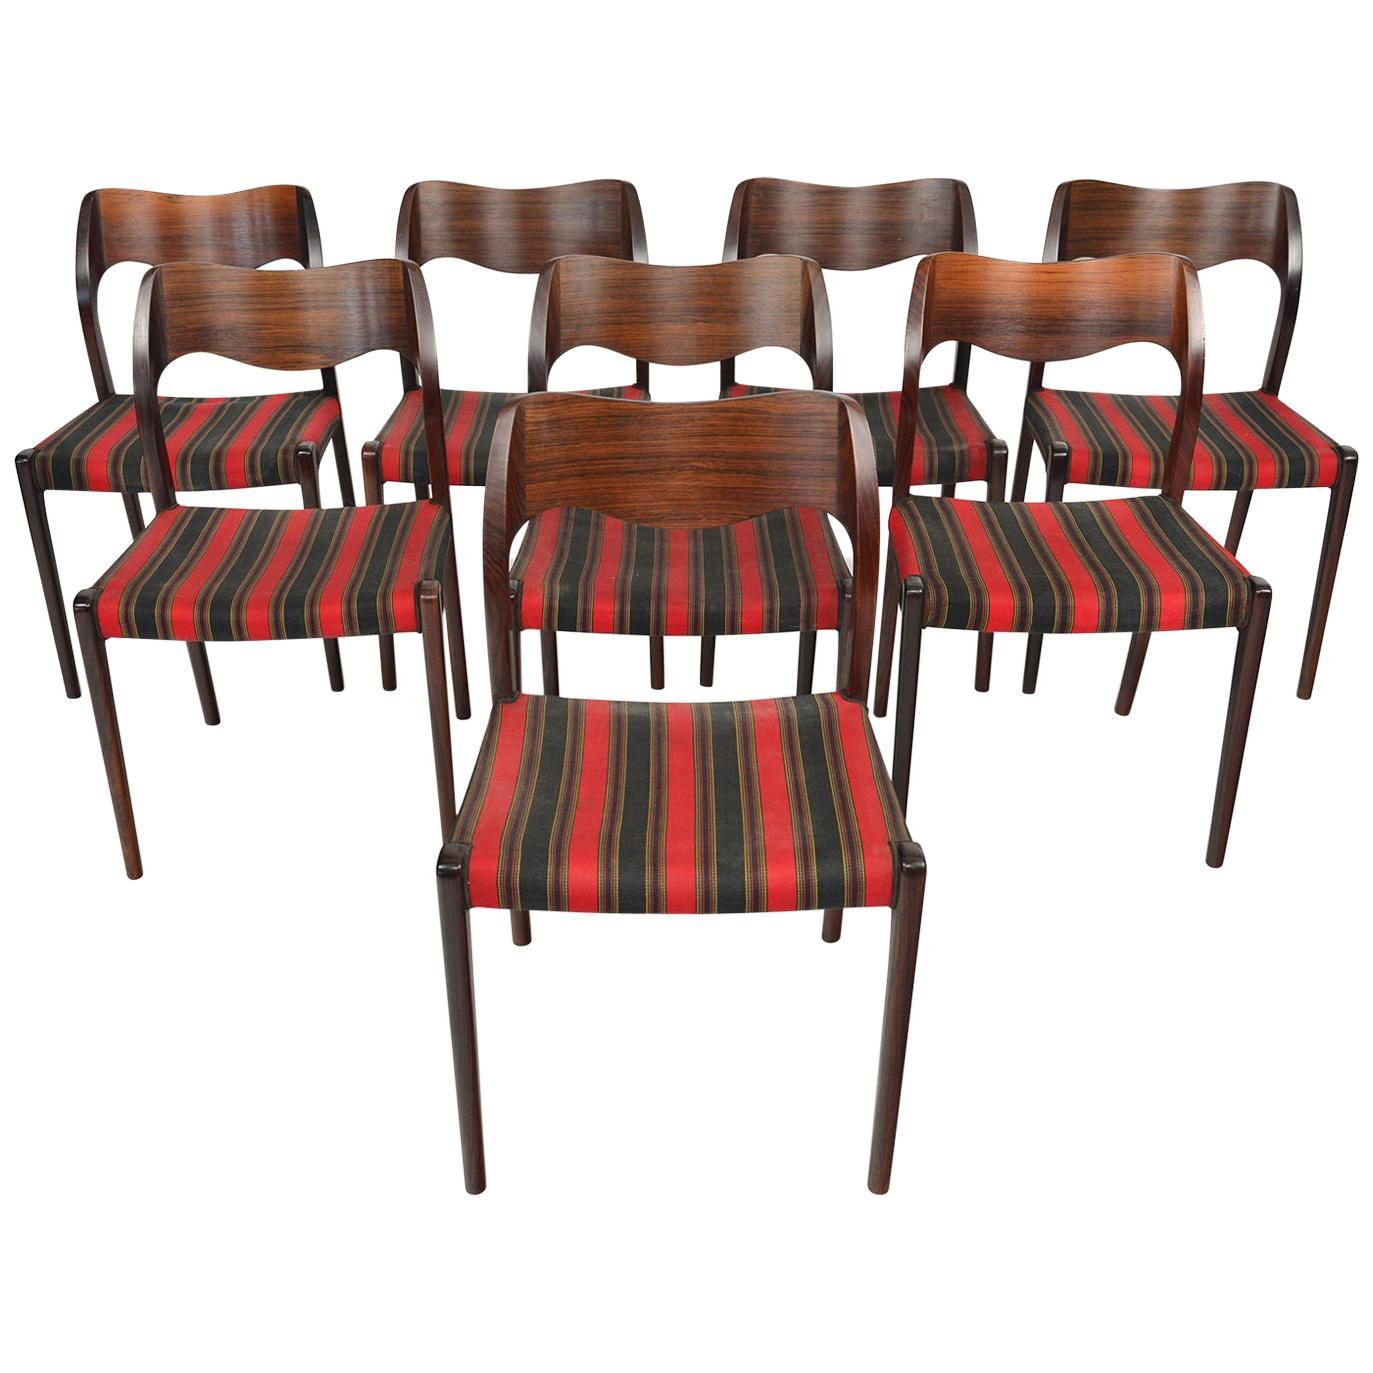 Set of Eight Moller Model 71 Midcentury Dining Chairs in Brazilian Rosewood